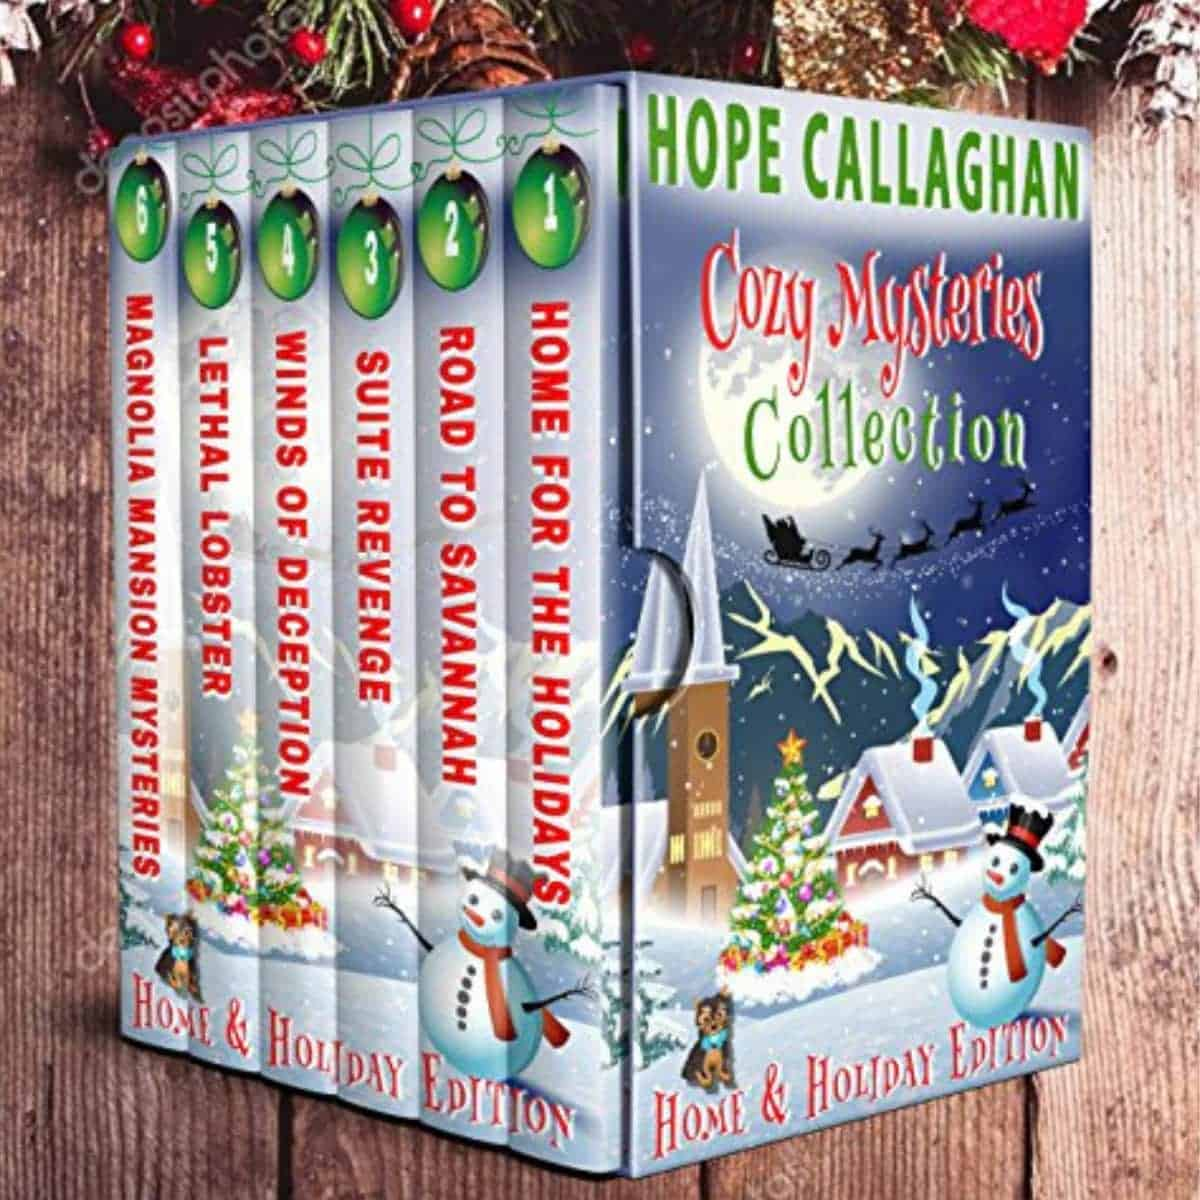 Mystery-Loving Brother: Cozy Mysteries Collection by Hope Callaghan | Top Kindle Books of 2018 | Gift Ideas For Each Member of the Family